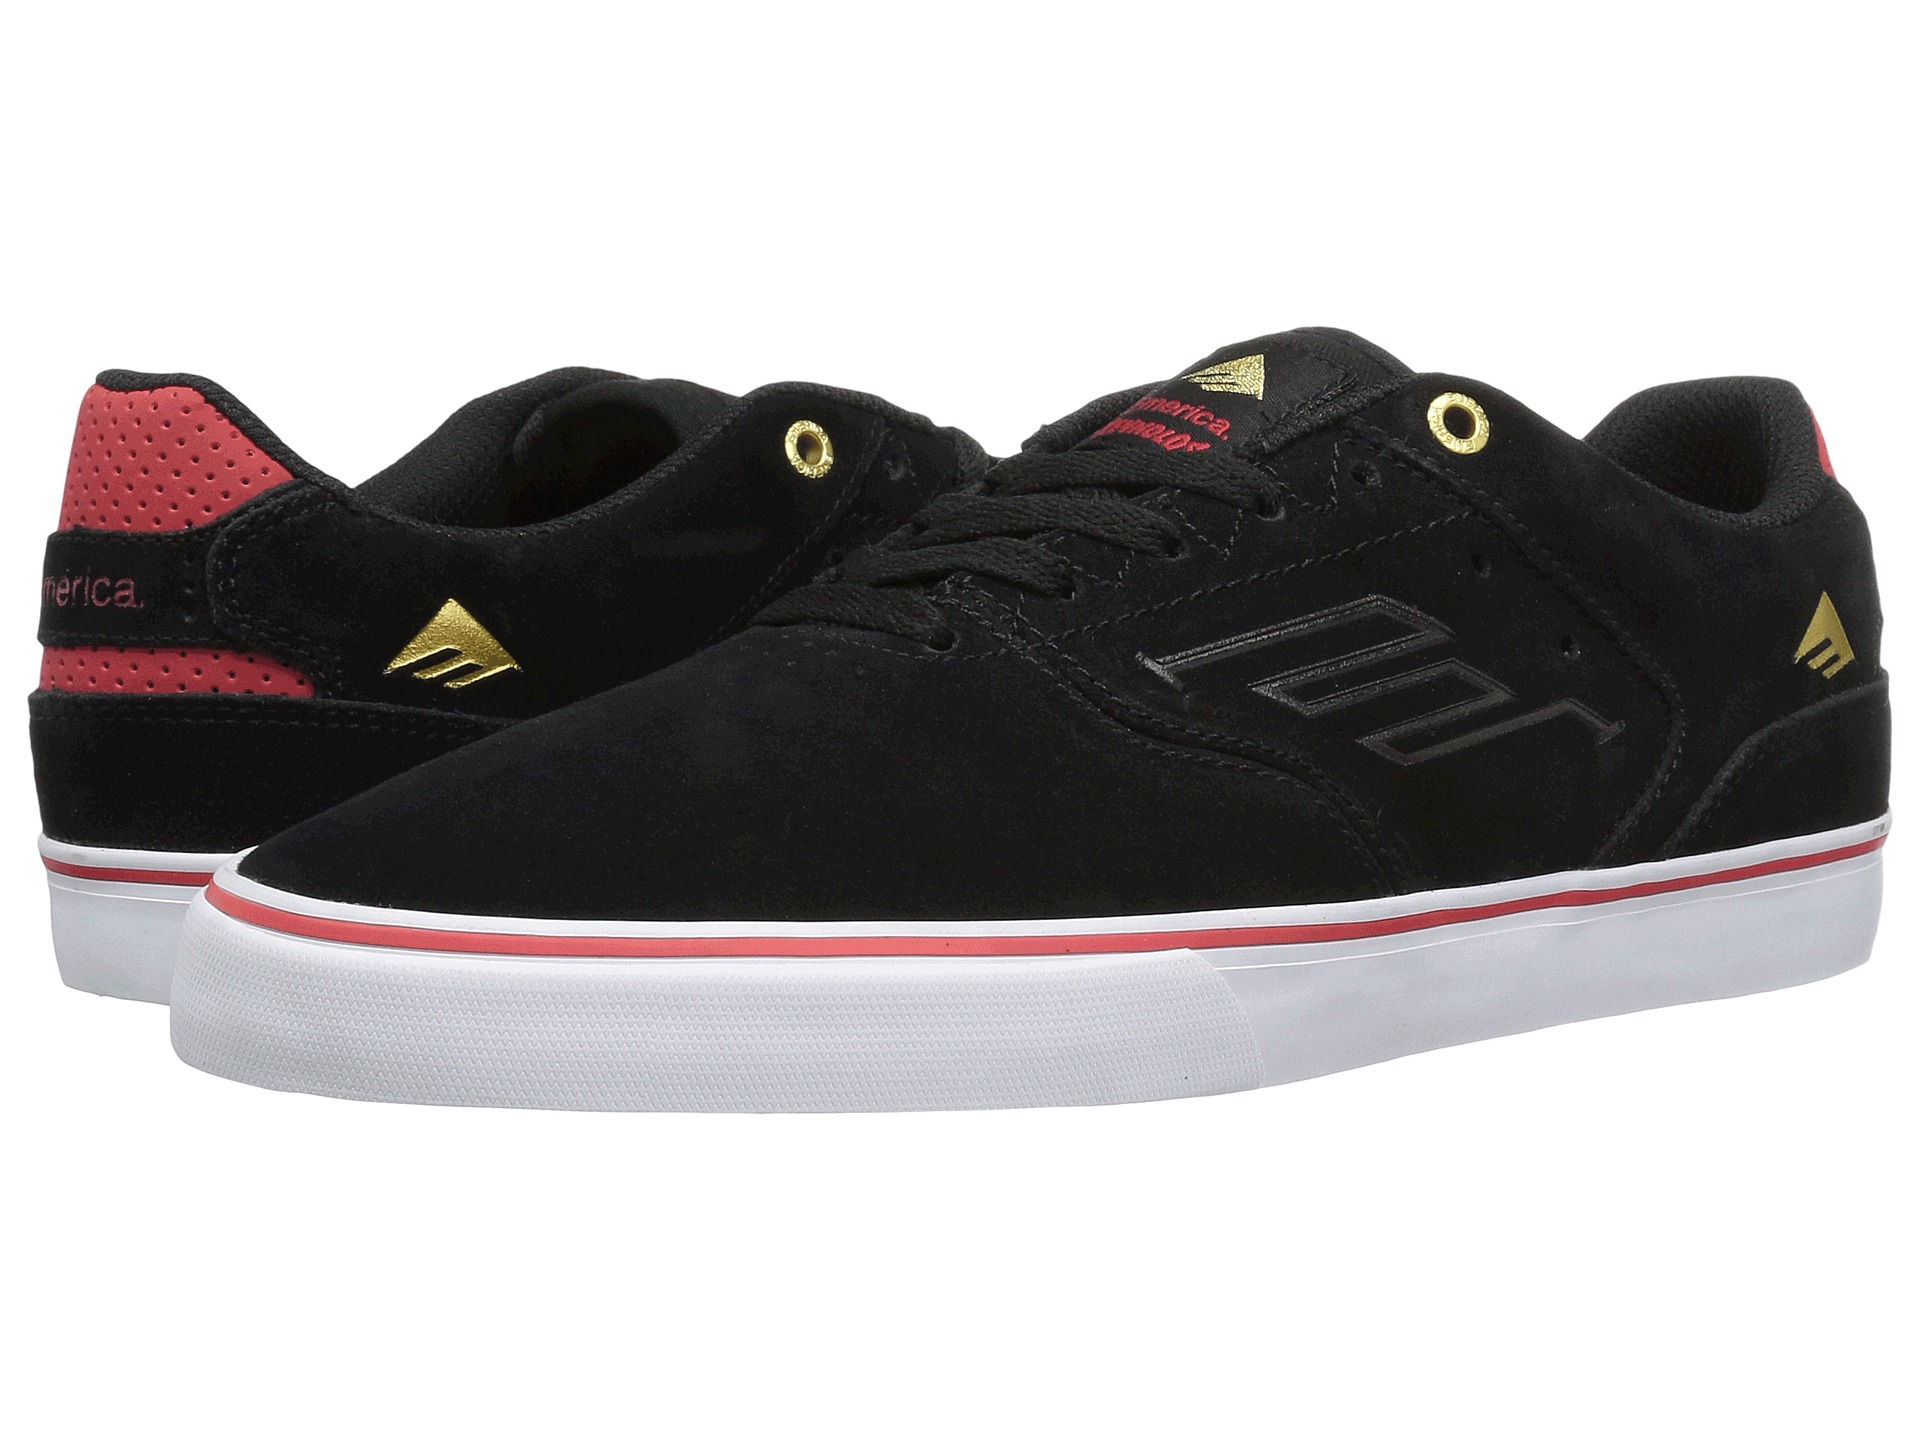 low priced a6a87 31493 Emerica The Reynolds Low Vulc at low-cost